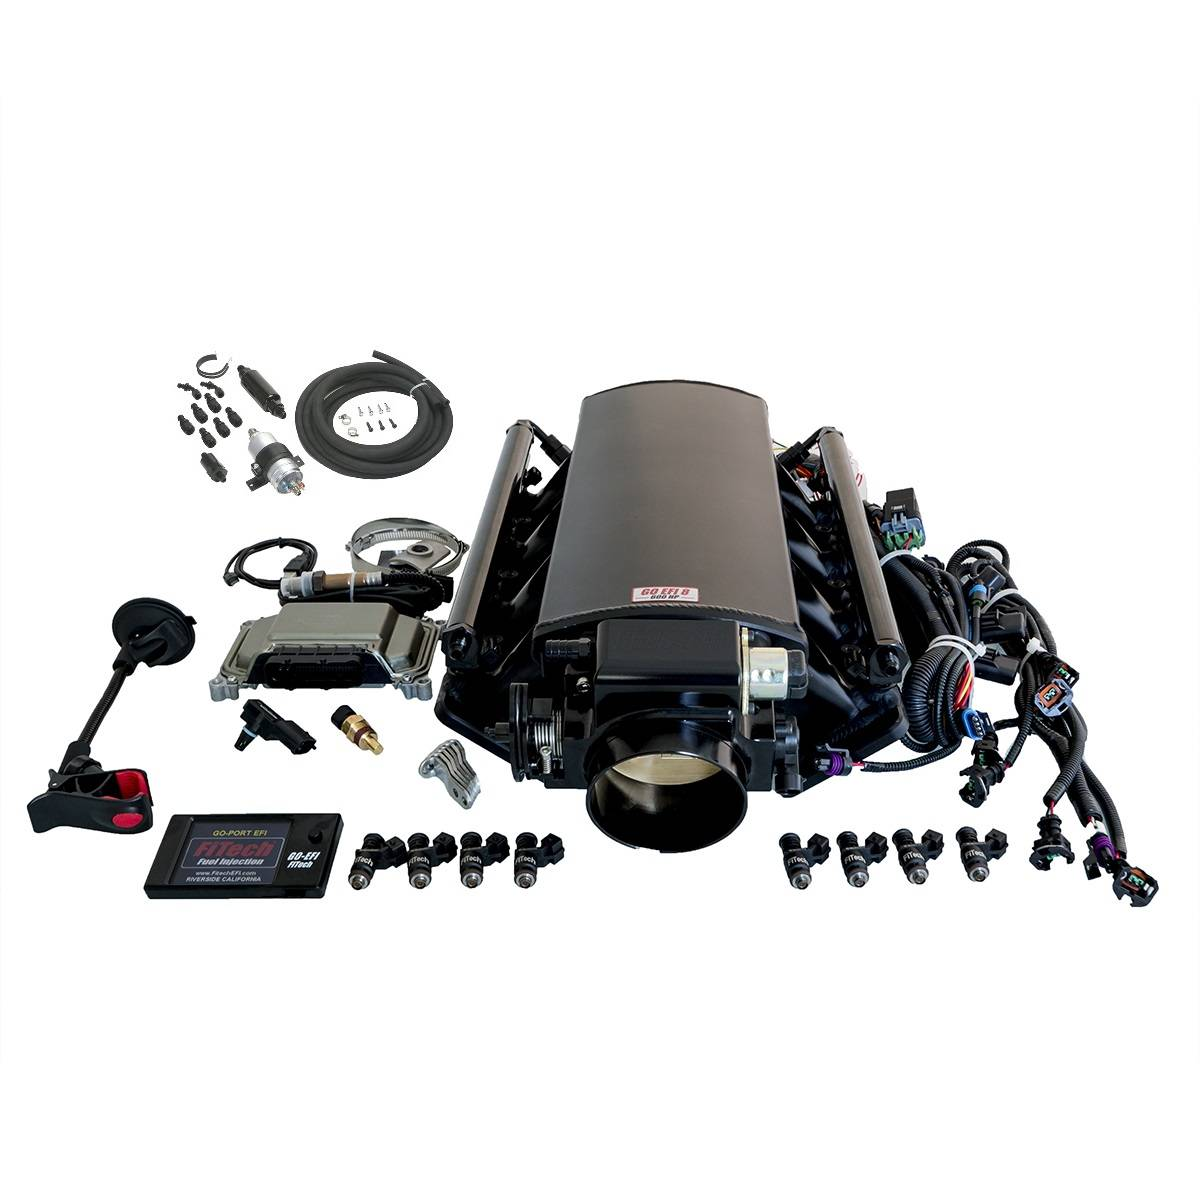 FTH-71004 - FiTech Fuel Injection Ultimate LS Kit for LS1